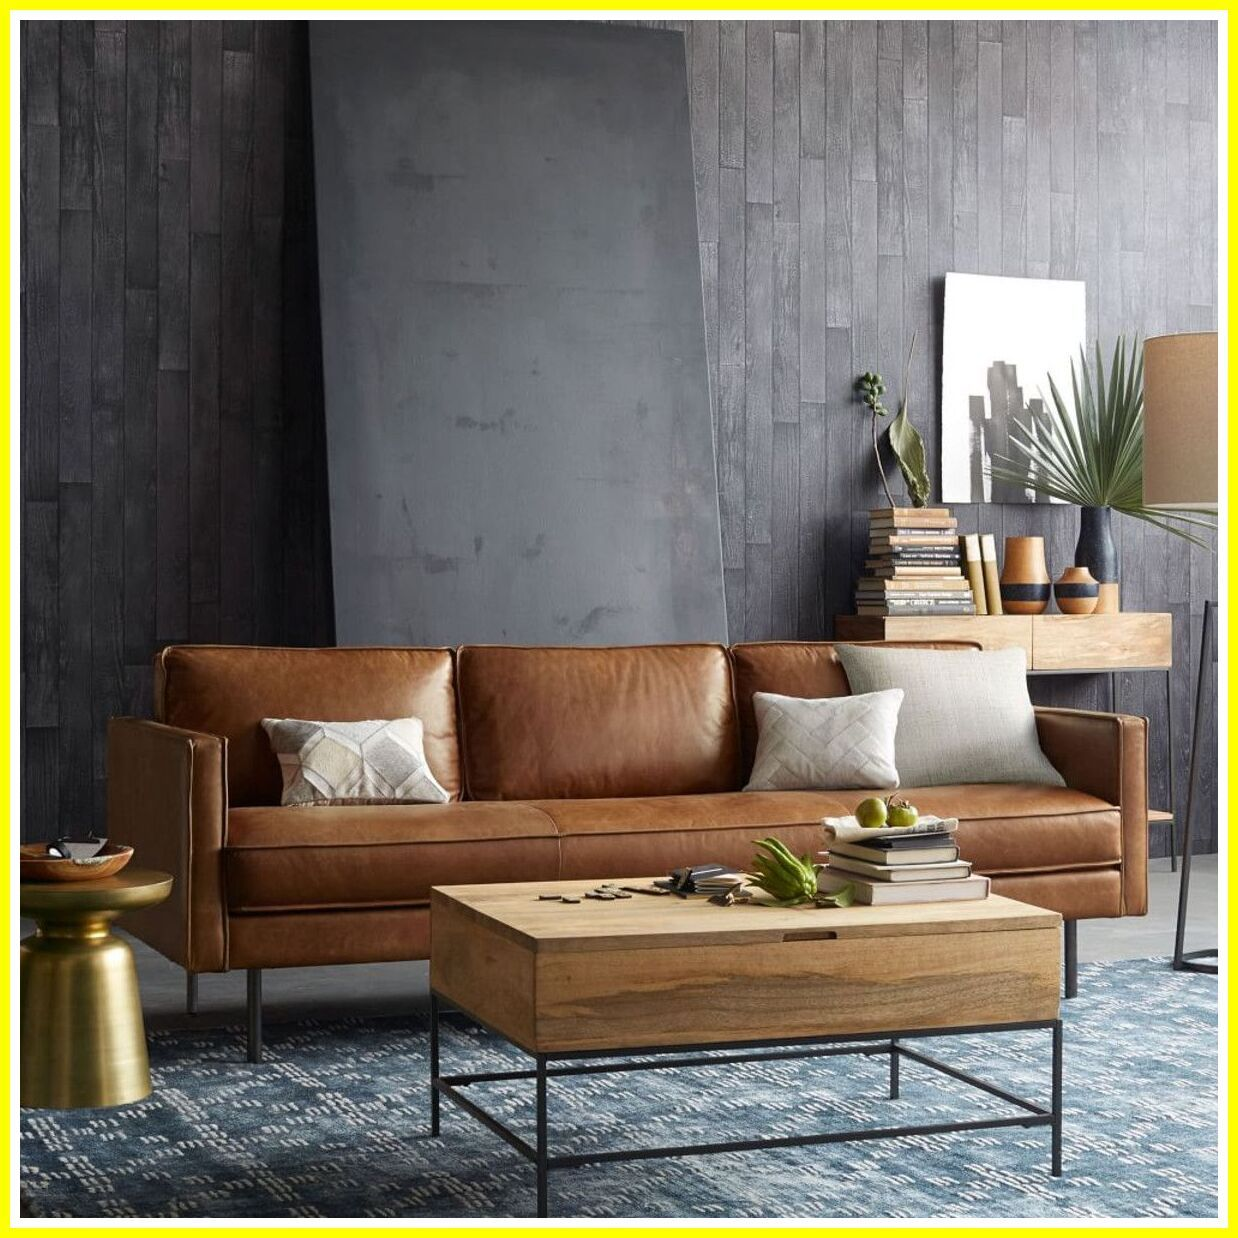 85 Reference Of Leather Couches Living Room Ideas In